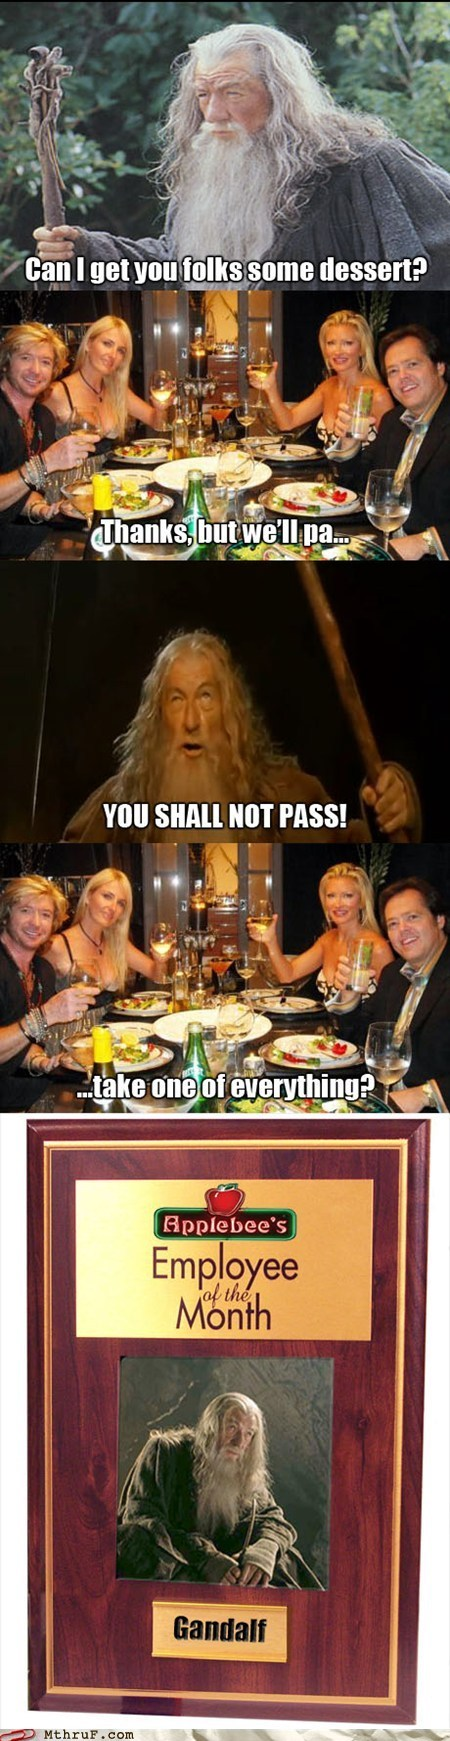 applebees,dessert,gandalf,ordering dessert,you shall not pass